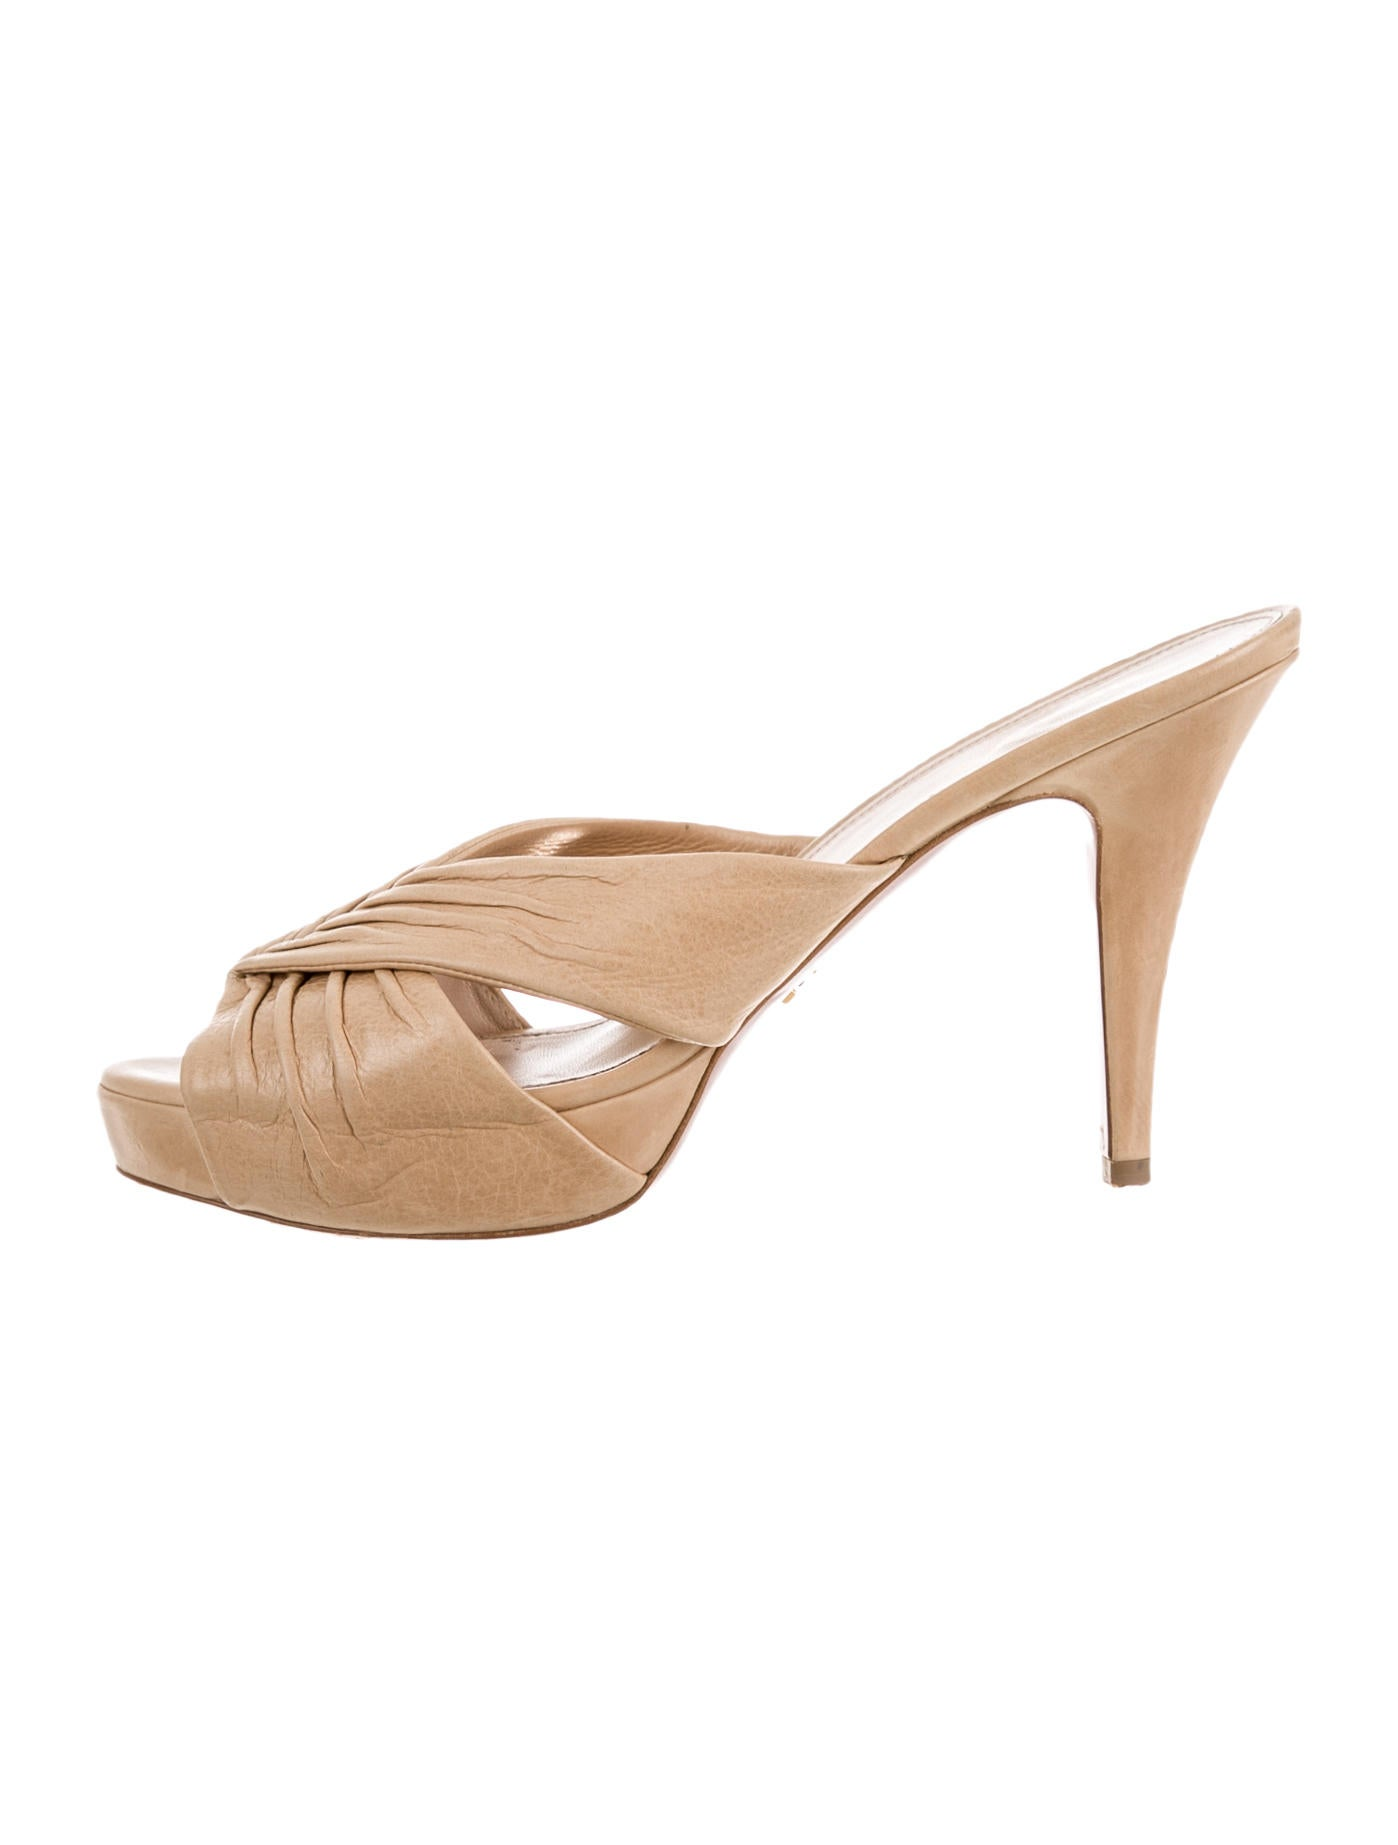 Simple Womens Shoes Prada Style Code 1x801extpf0002